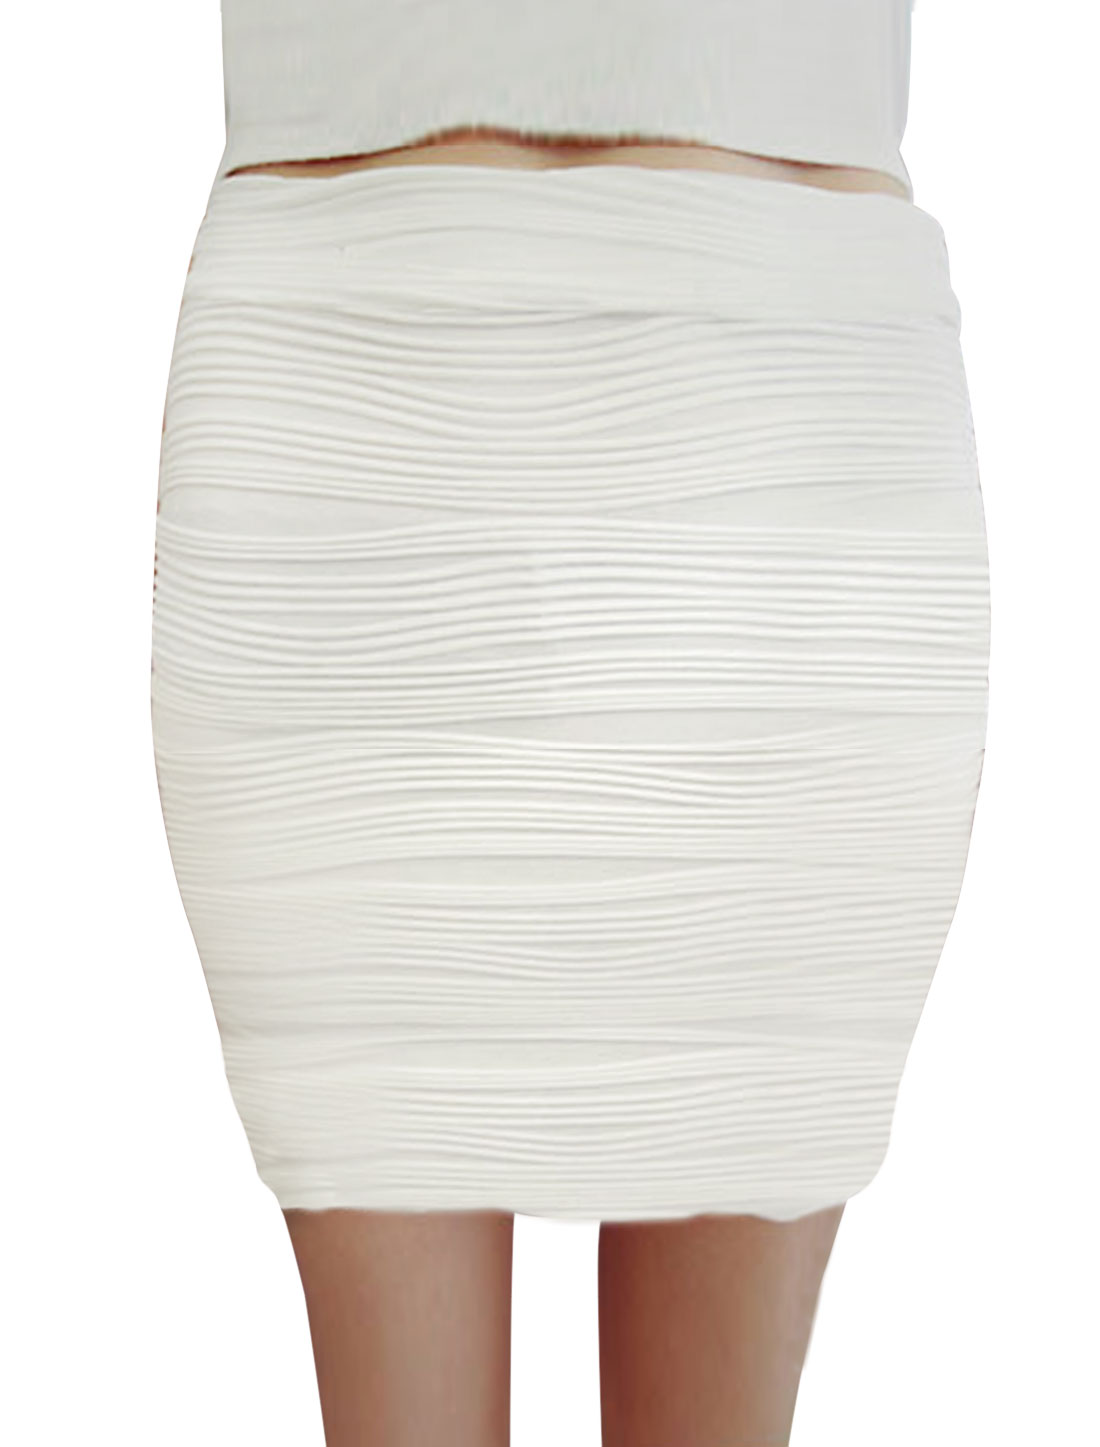 Textured Design Mid Rise Sexy Mini Skirt for Lady White XS